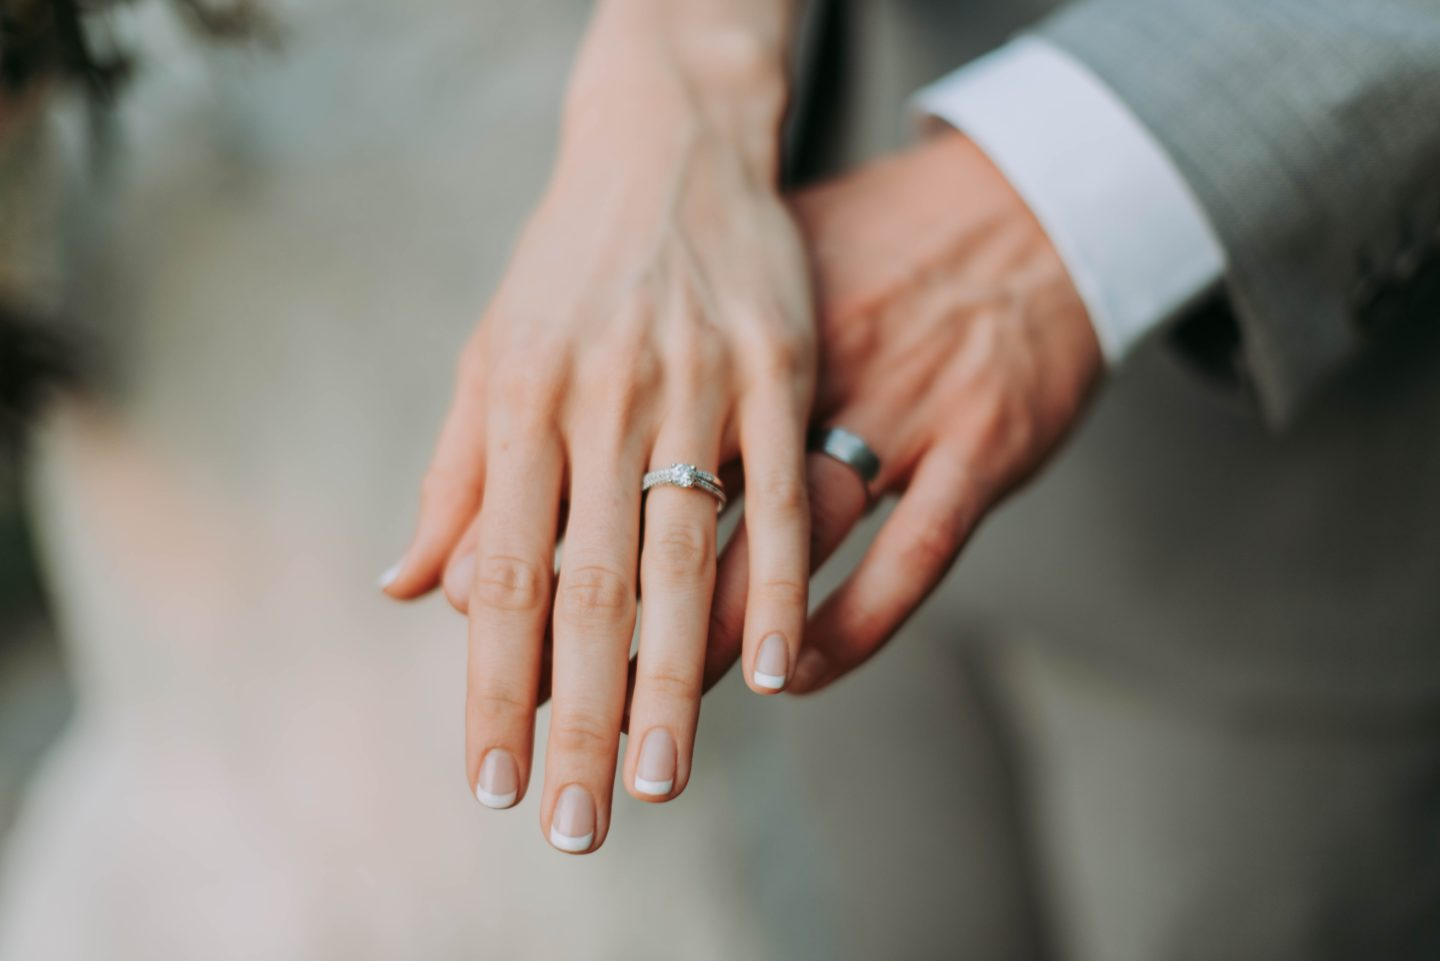 Holding hands while showing off wedding bands